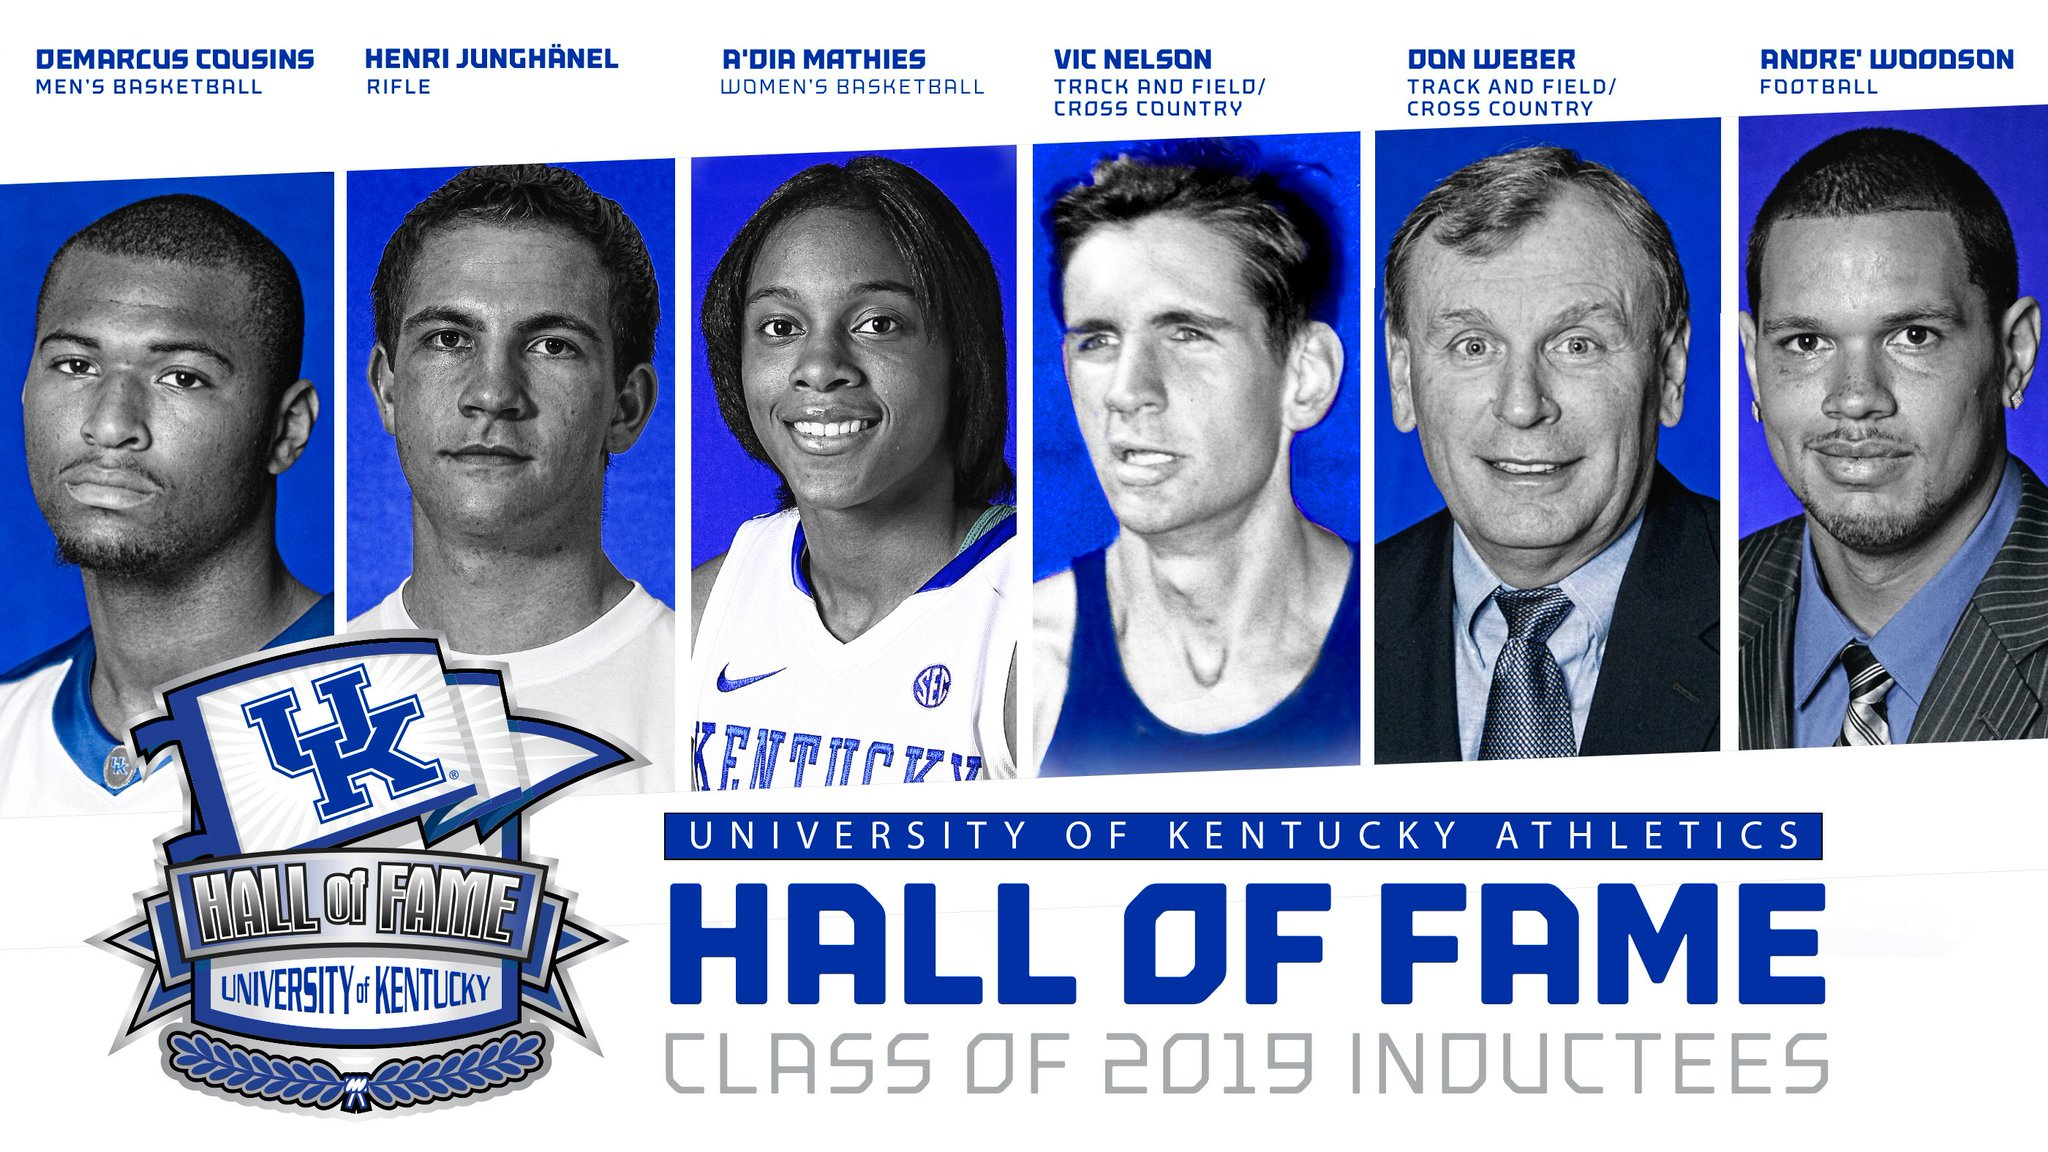 Kentucky Athletics On Twitter We Are Proud To Announce Our